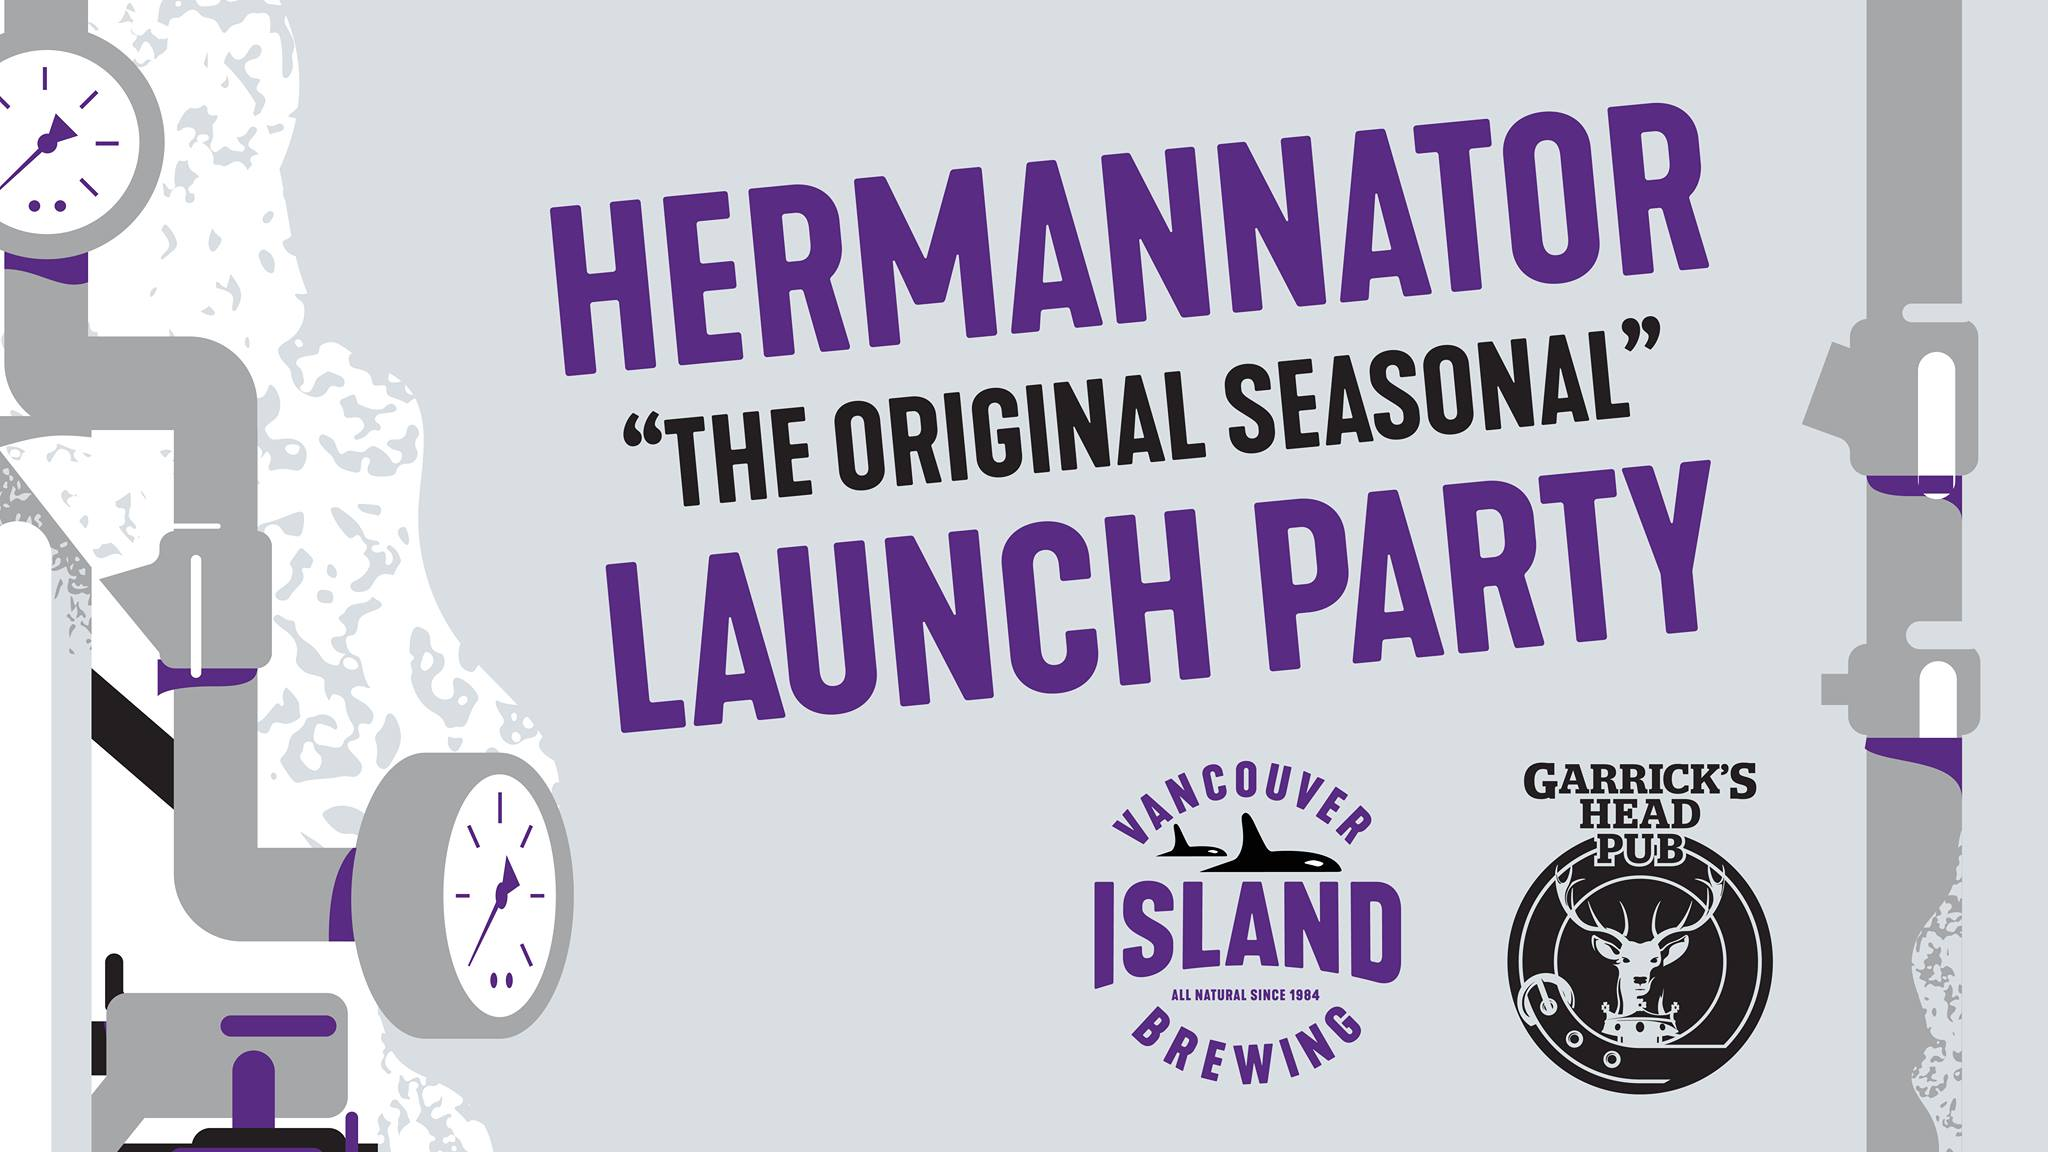 Hermannator 2018 Launch Party